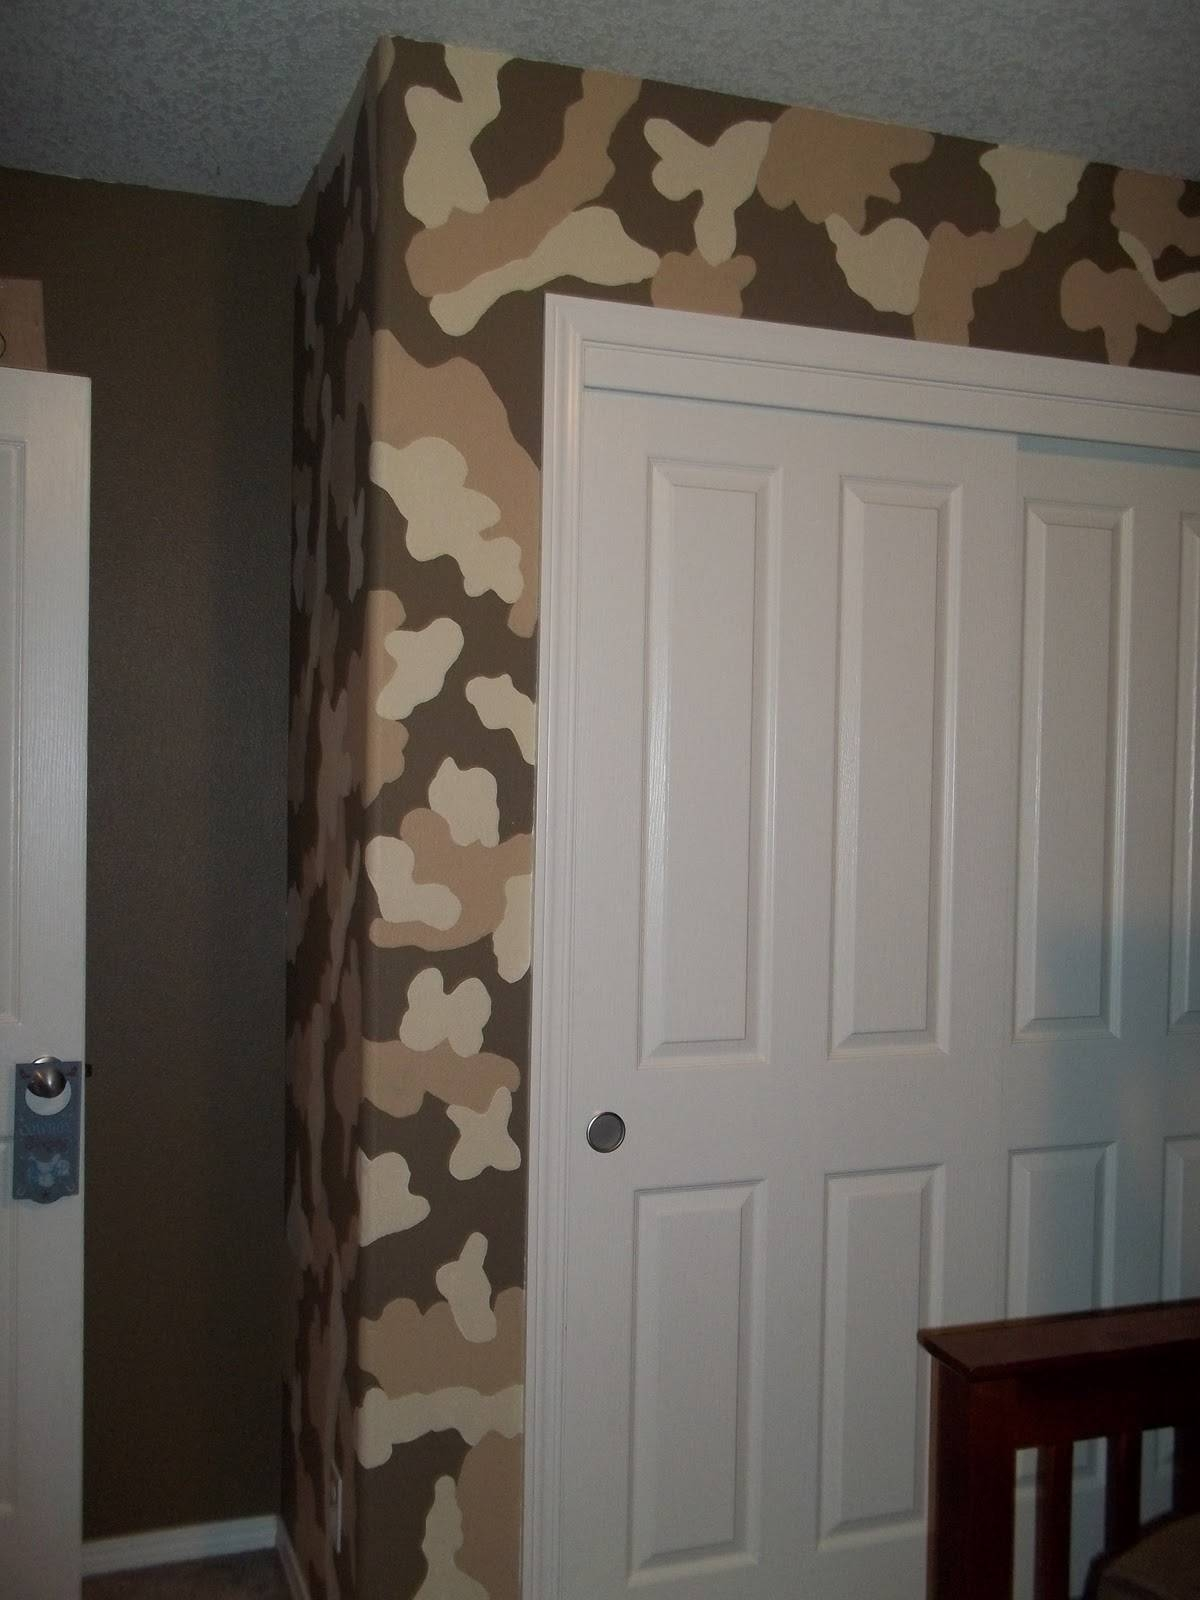 Camouflage Wall Decor – Todosobreelamor With Regard To Most Recently Released Camouflage Wall Art (View 10 of 20)